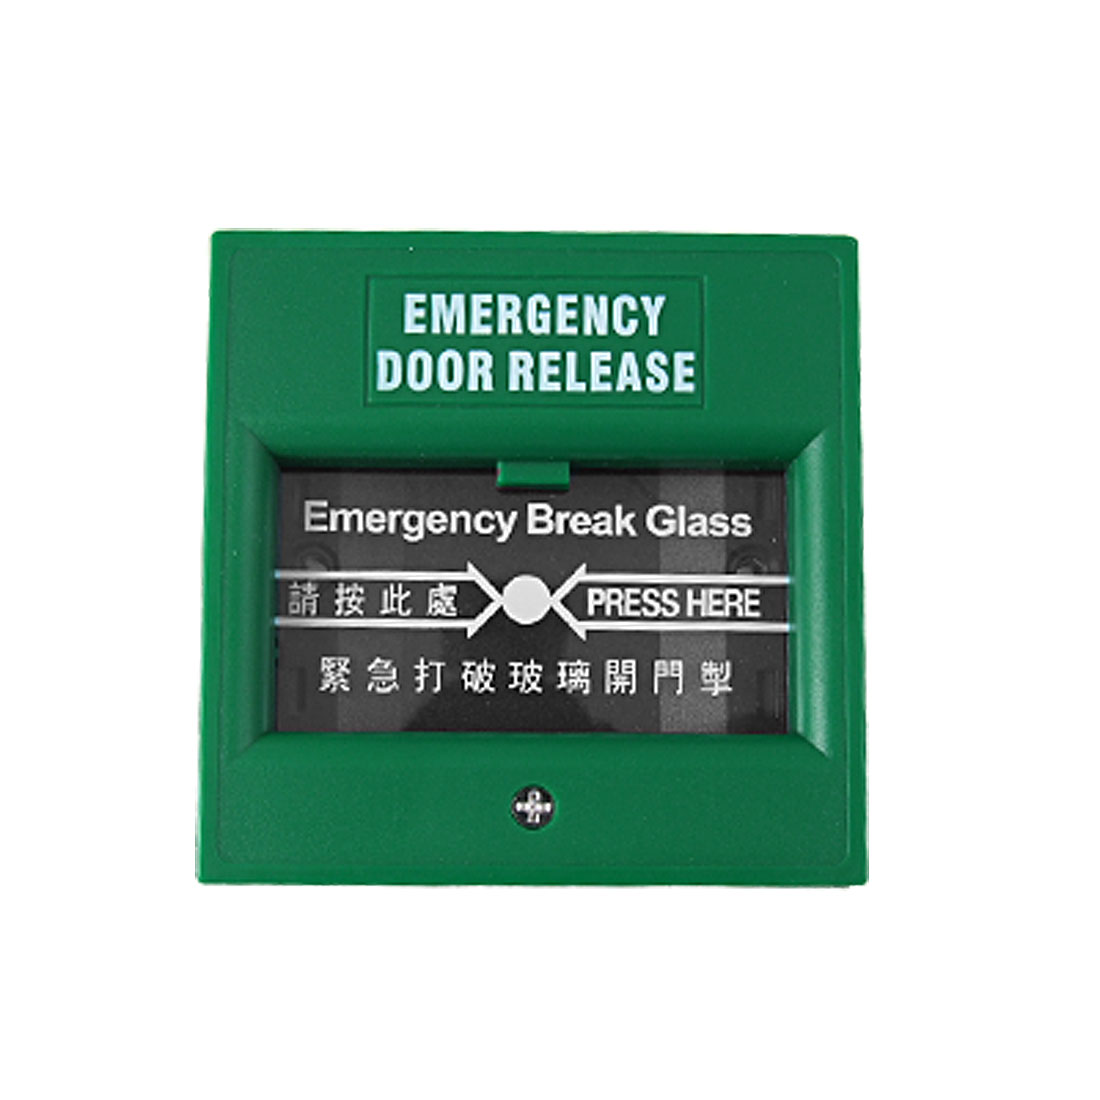 Fire Emergency Break Glass Exit Release Button Green